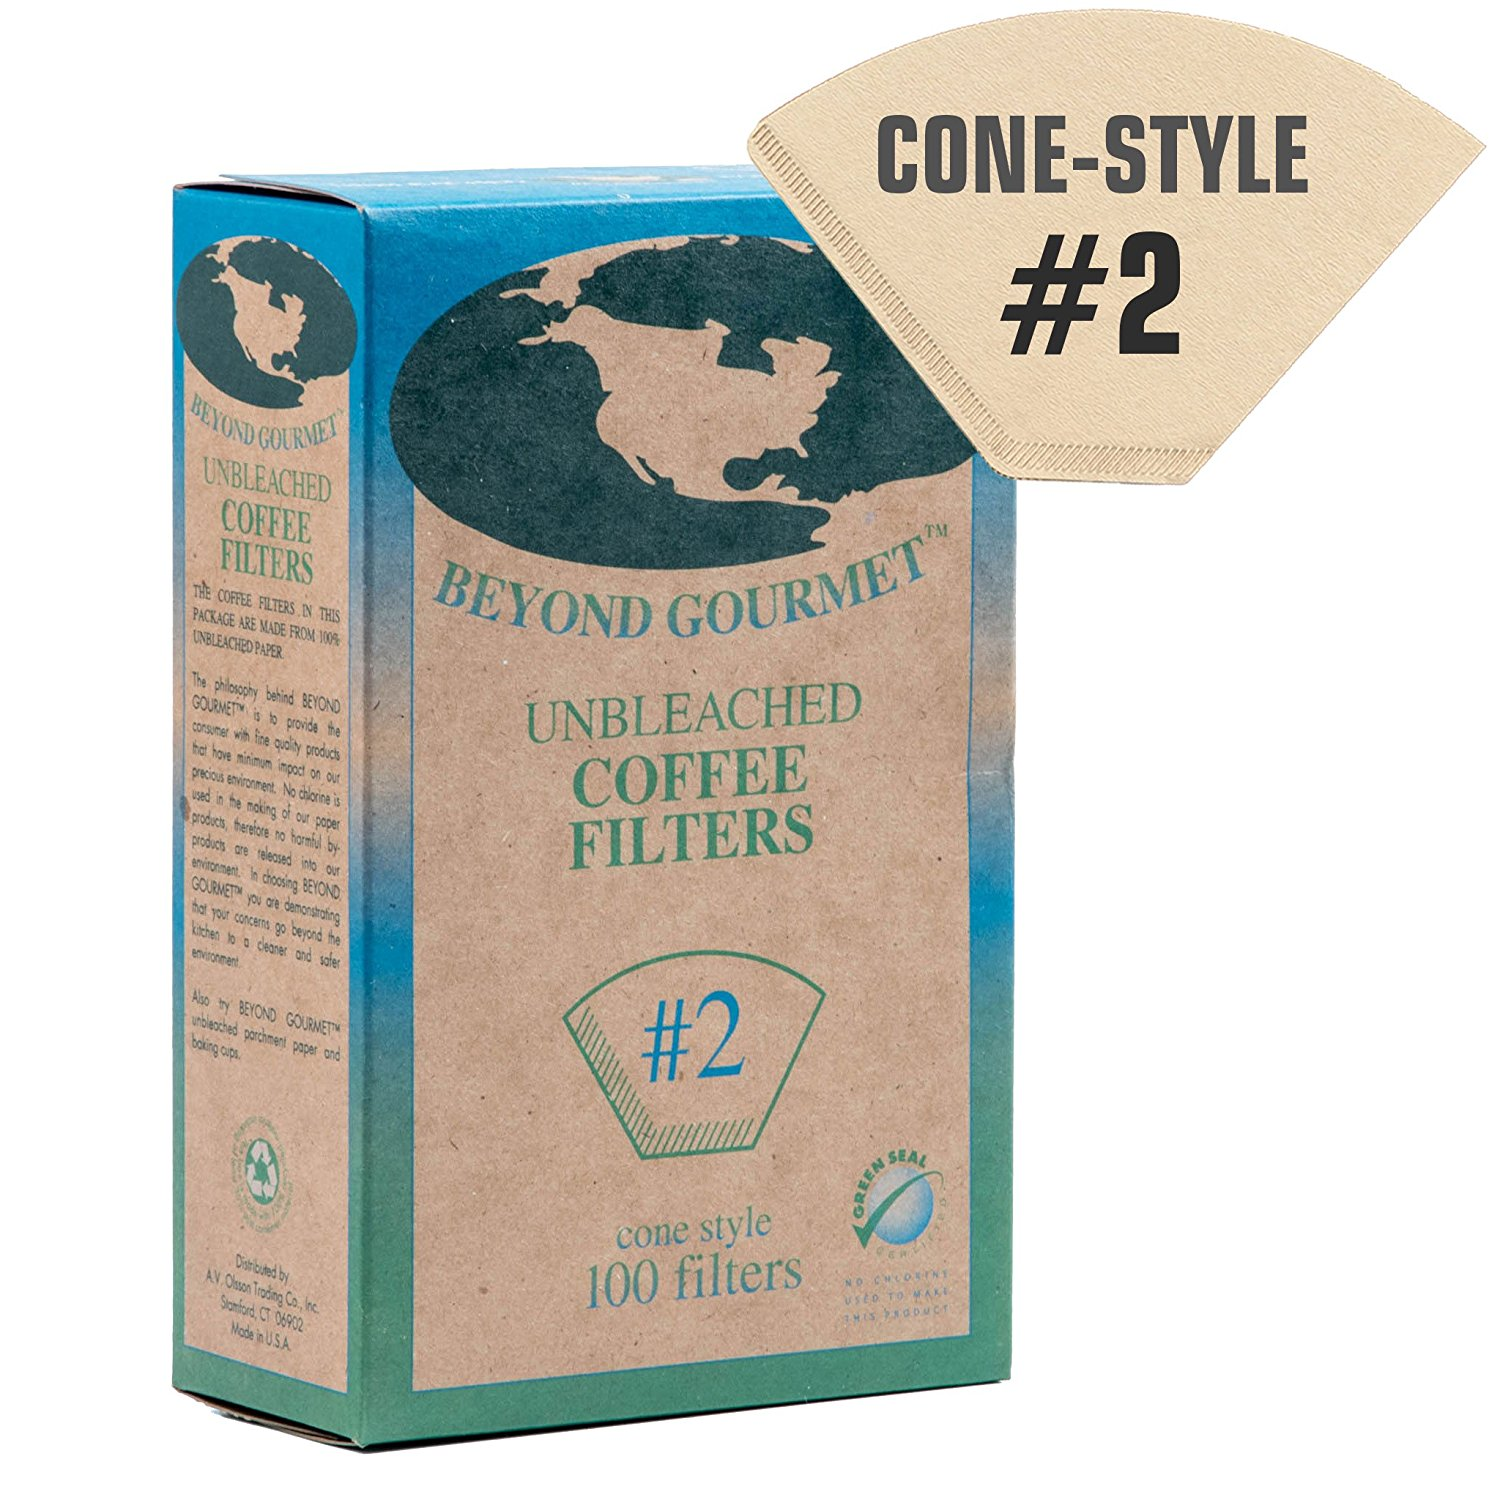 #2 Cone Paper Coffee Filters - Brown, Unbleached, Chlorine-free (#2, 100 Filters)